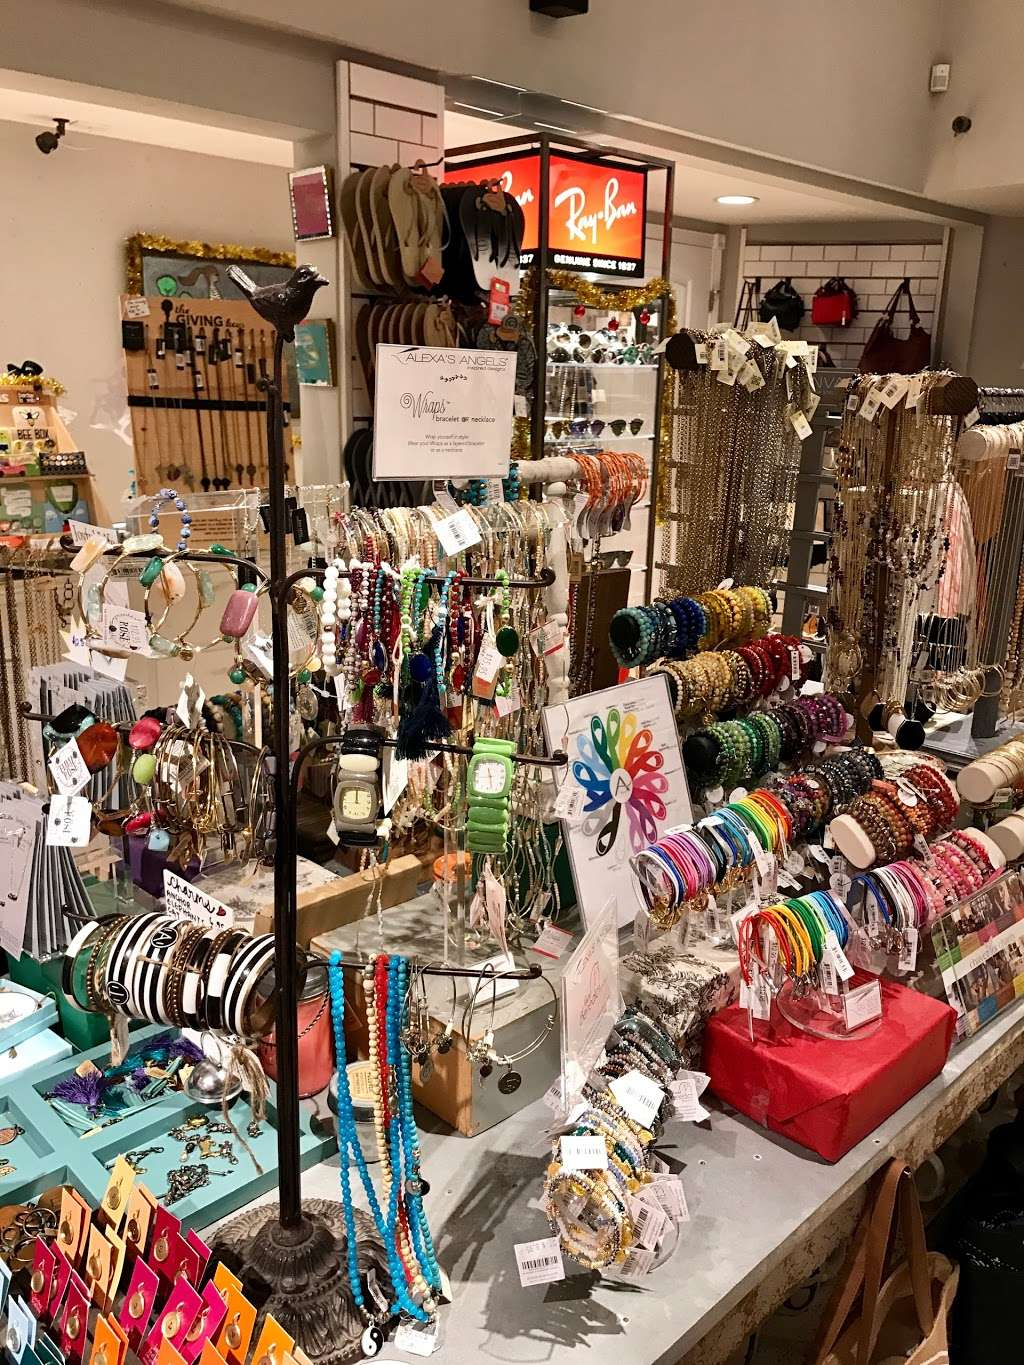 Urban Girl Accessories - clothing store  | Photo 3 of 10 | Address: 837 W Harbor Dr Suite A, San Diego, CA 92101, USA | Phone: (619) 231-8845